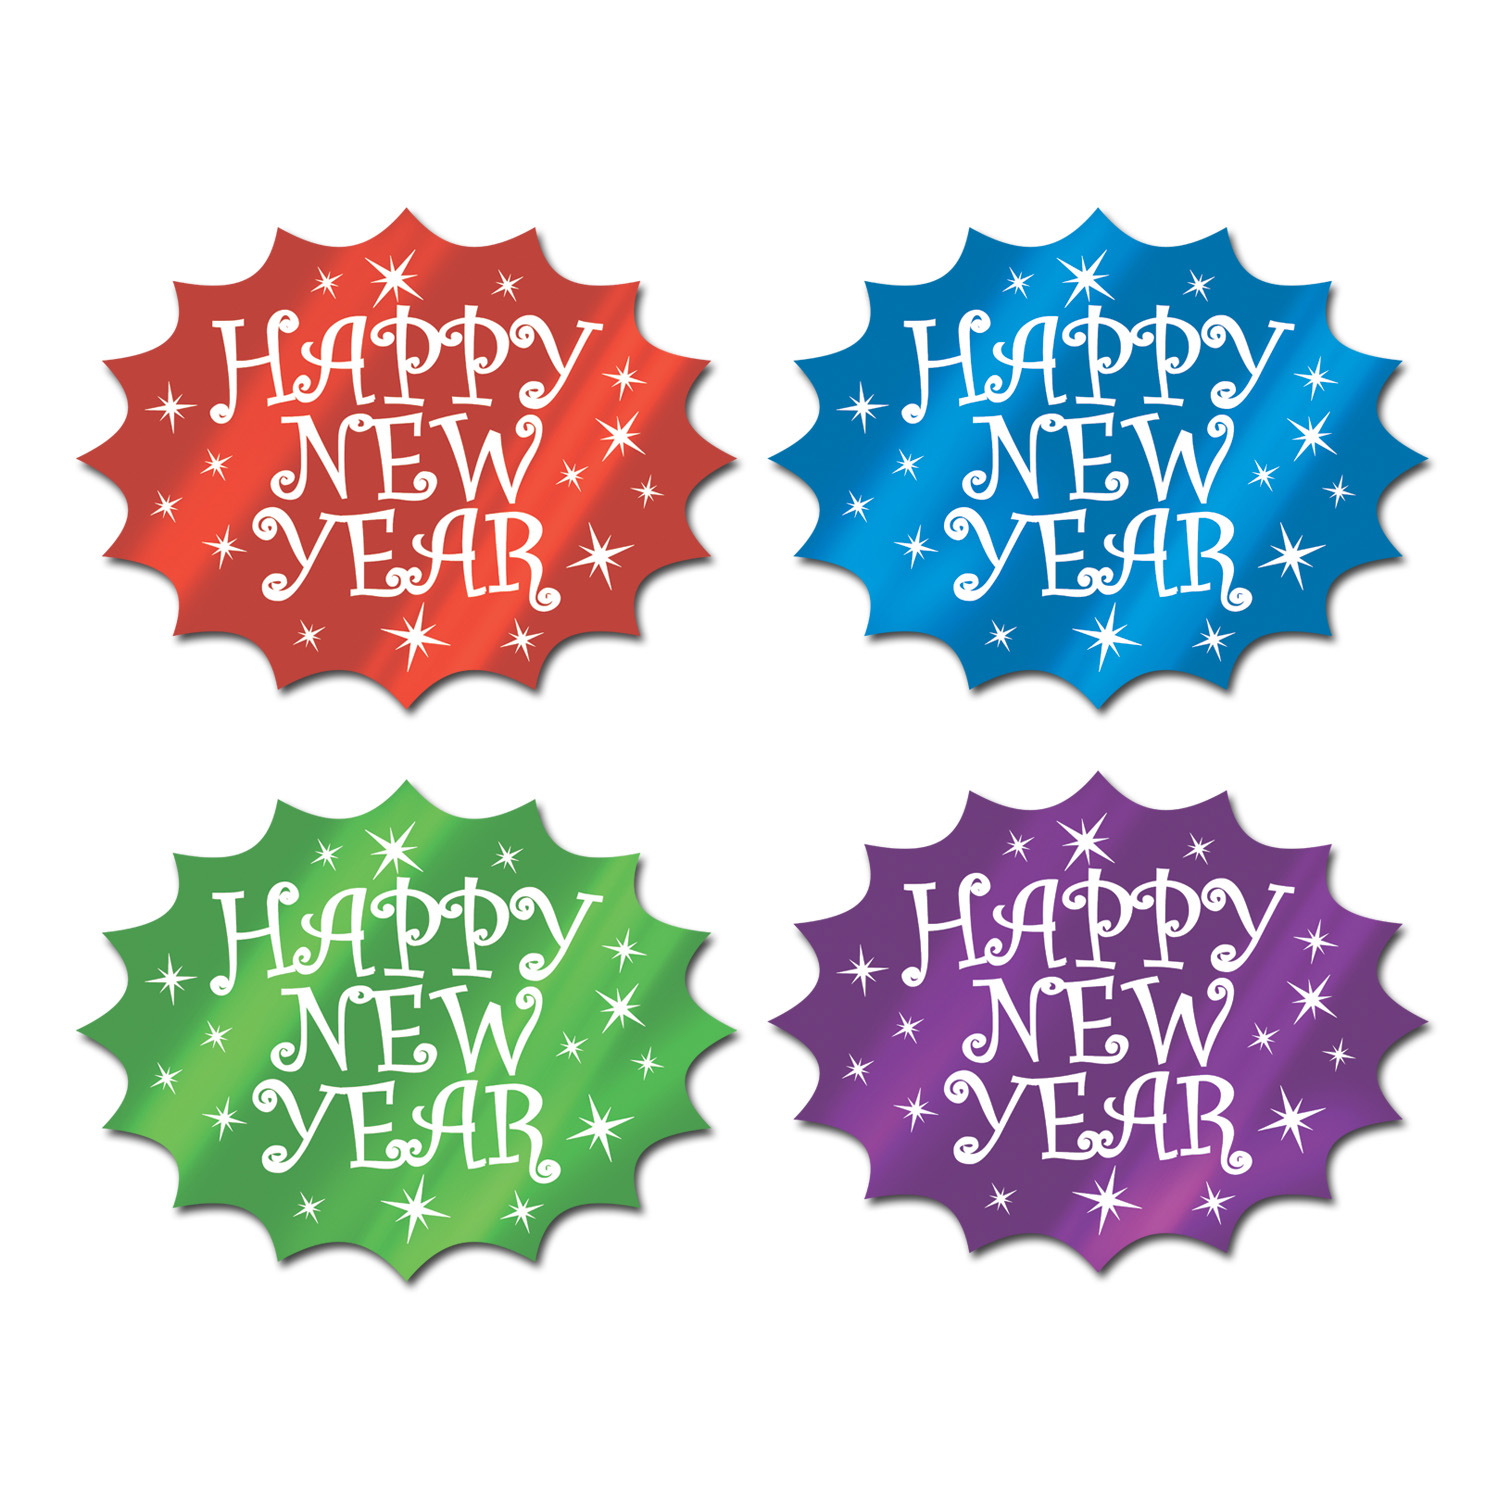 Foil Happy New Year Cutouts (Pack of 24)